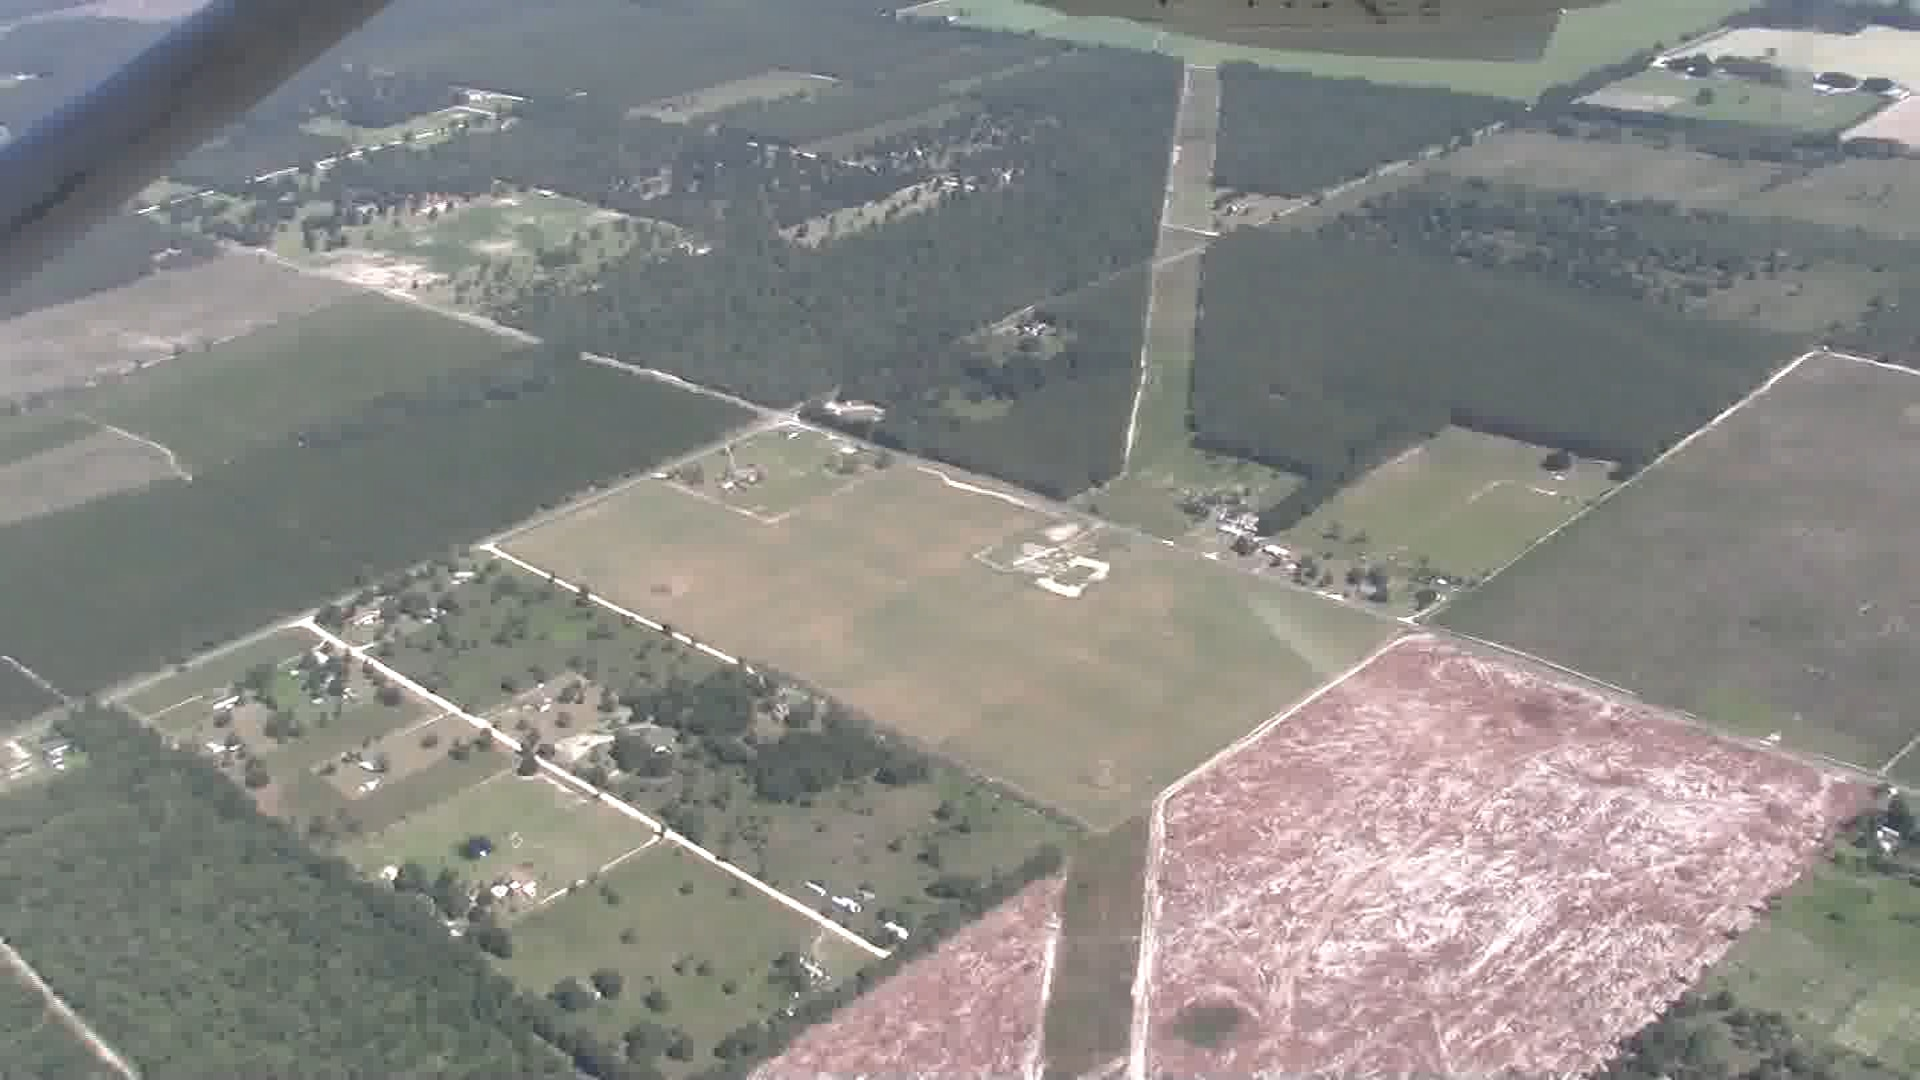 1920x1080 Pastured Life, Peurrung, Hildreth Compressor Station, in WWALS flies with Southwings, by John S. Quarterman, for WWALS.net, 21 June 2016